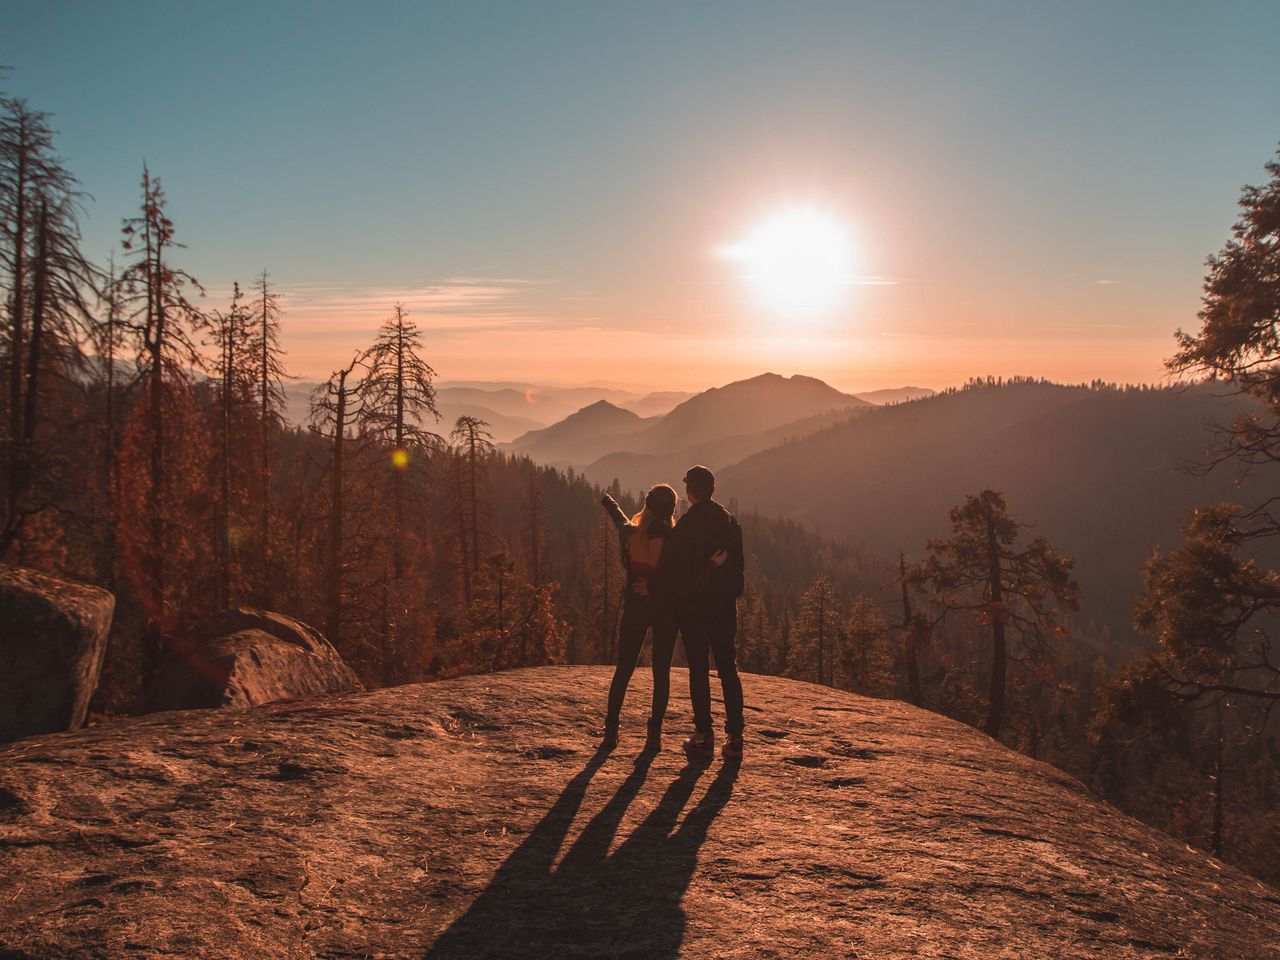 1280x960 Wallpaper couple, mountains, travel, sunset, sequoia national park, united states